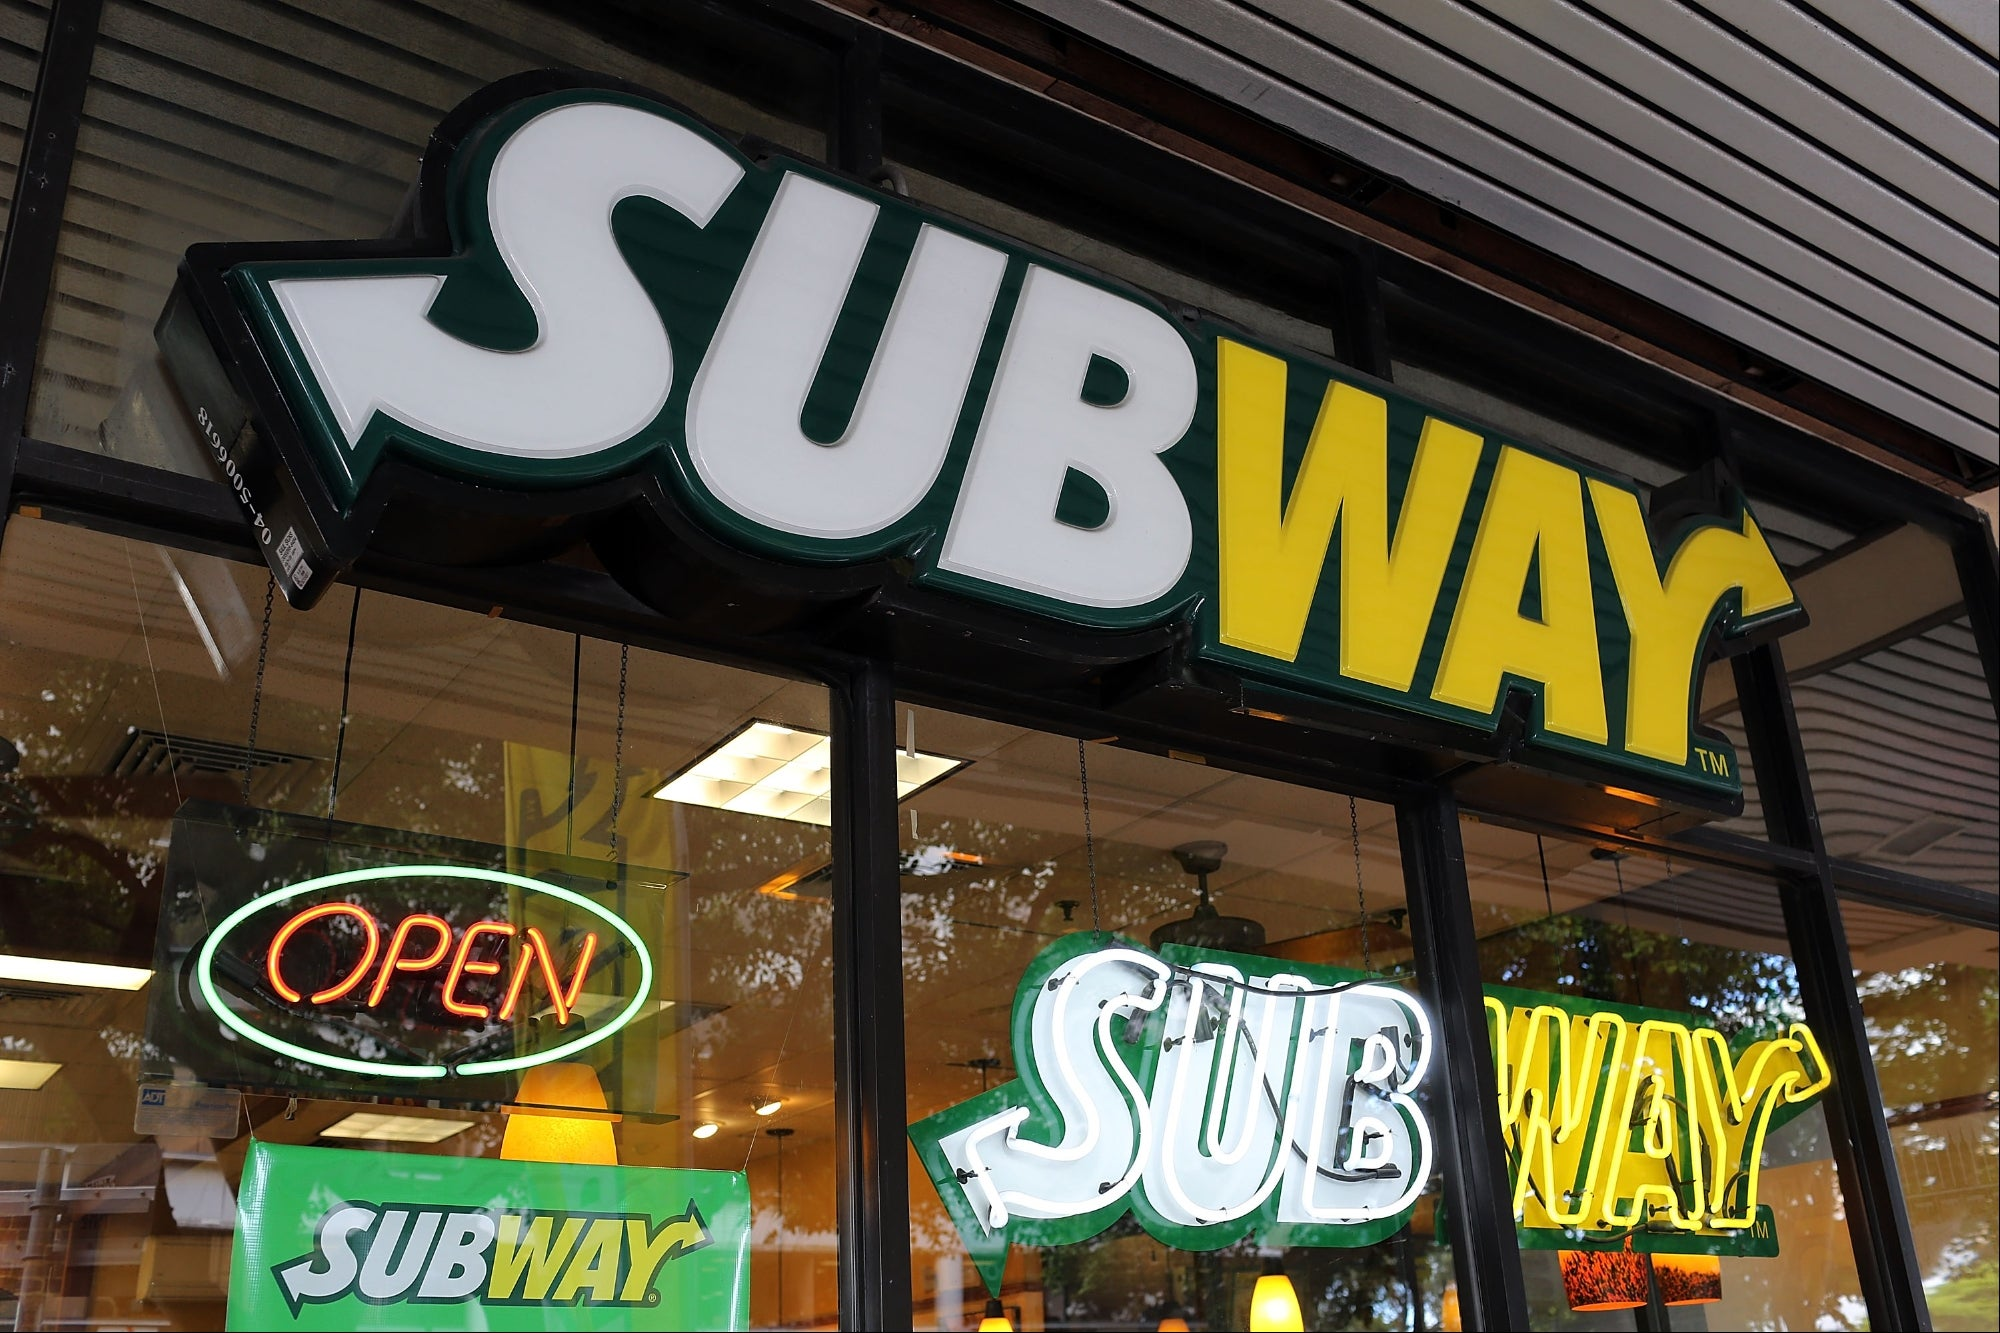 Subway Franchisees Write Open Letter to Owners: 'This Dream Has Turned Into a Nightmare'